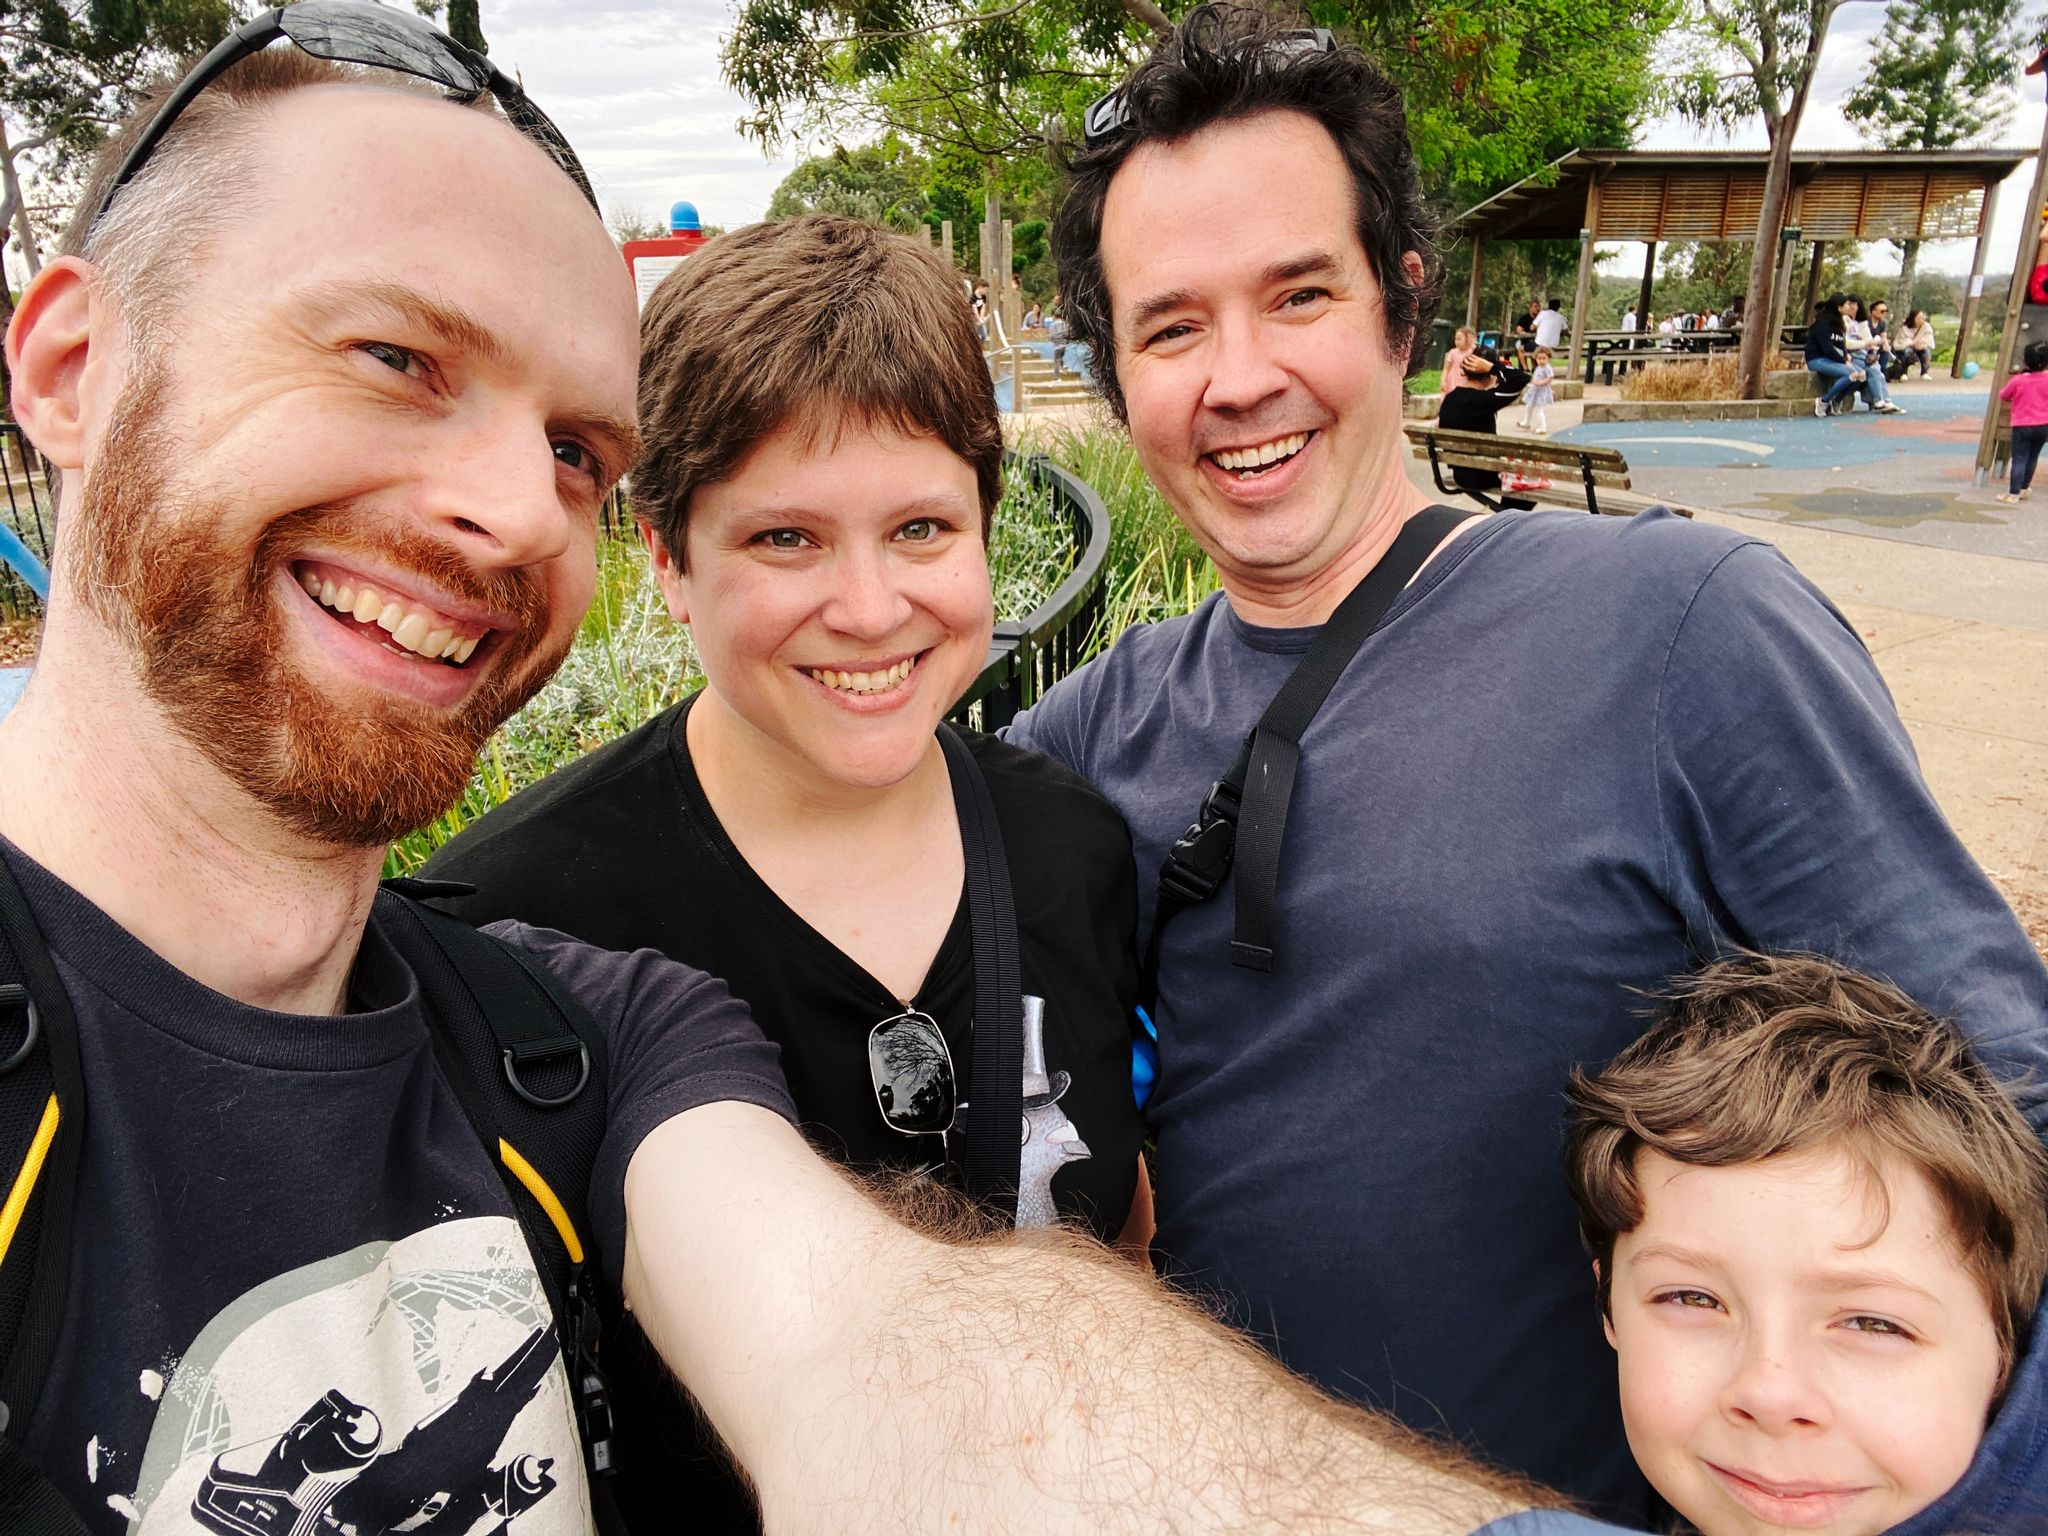 A selfie of four white people, me, a man with a red beard and short hair, Kristina, a woman with short brown hair, Andrew, a tall man with poofy-out dark hair, and Andrew's son Alex, a boy of about 7 with mousey brown hair who's only just in frame at the bottom right because he's so much shorter than the rest of us.